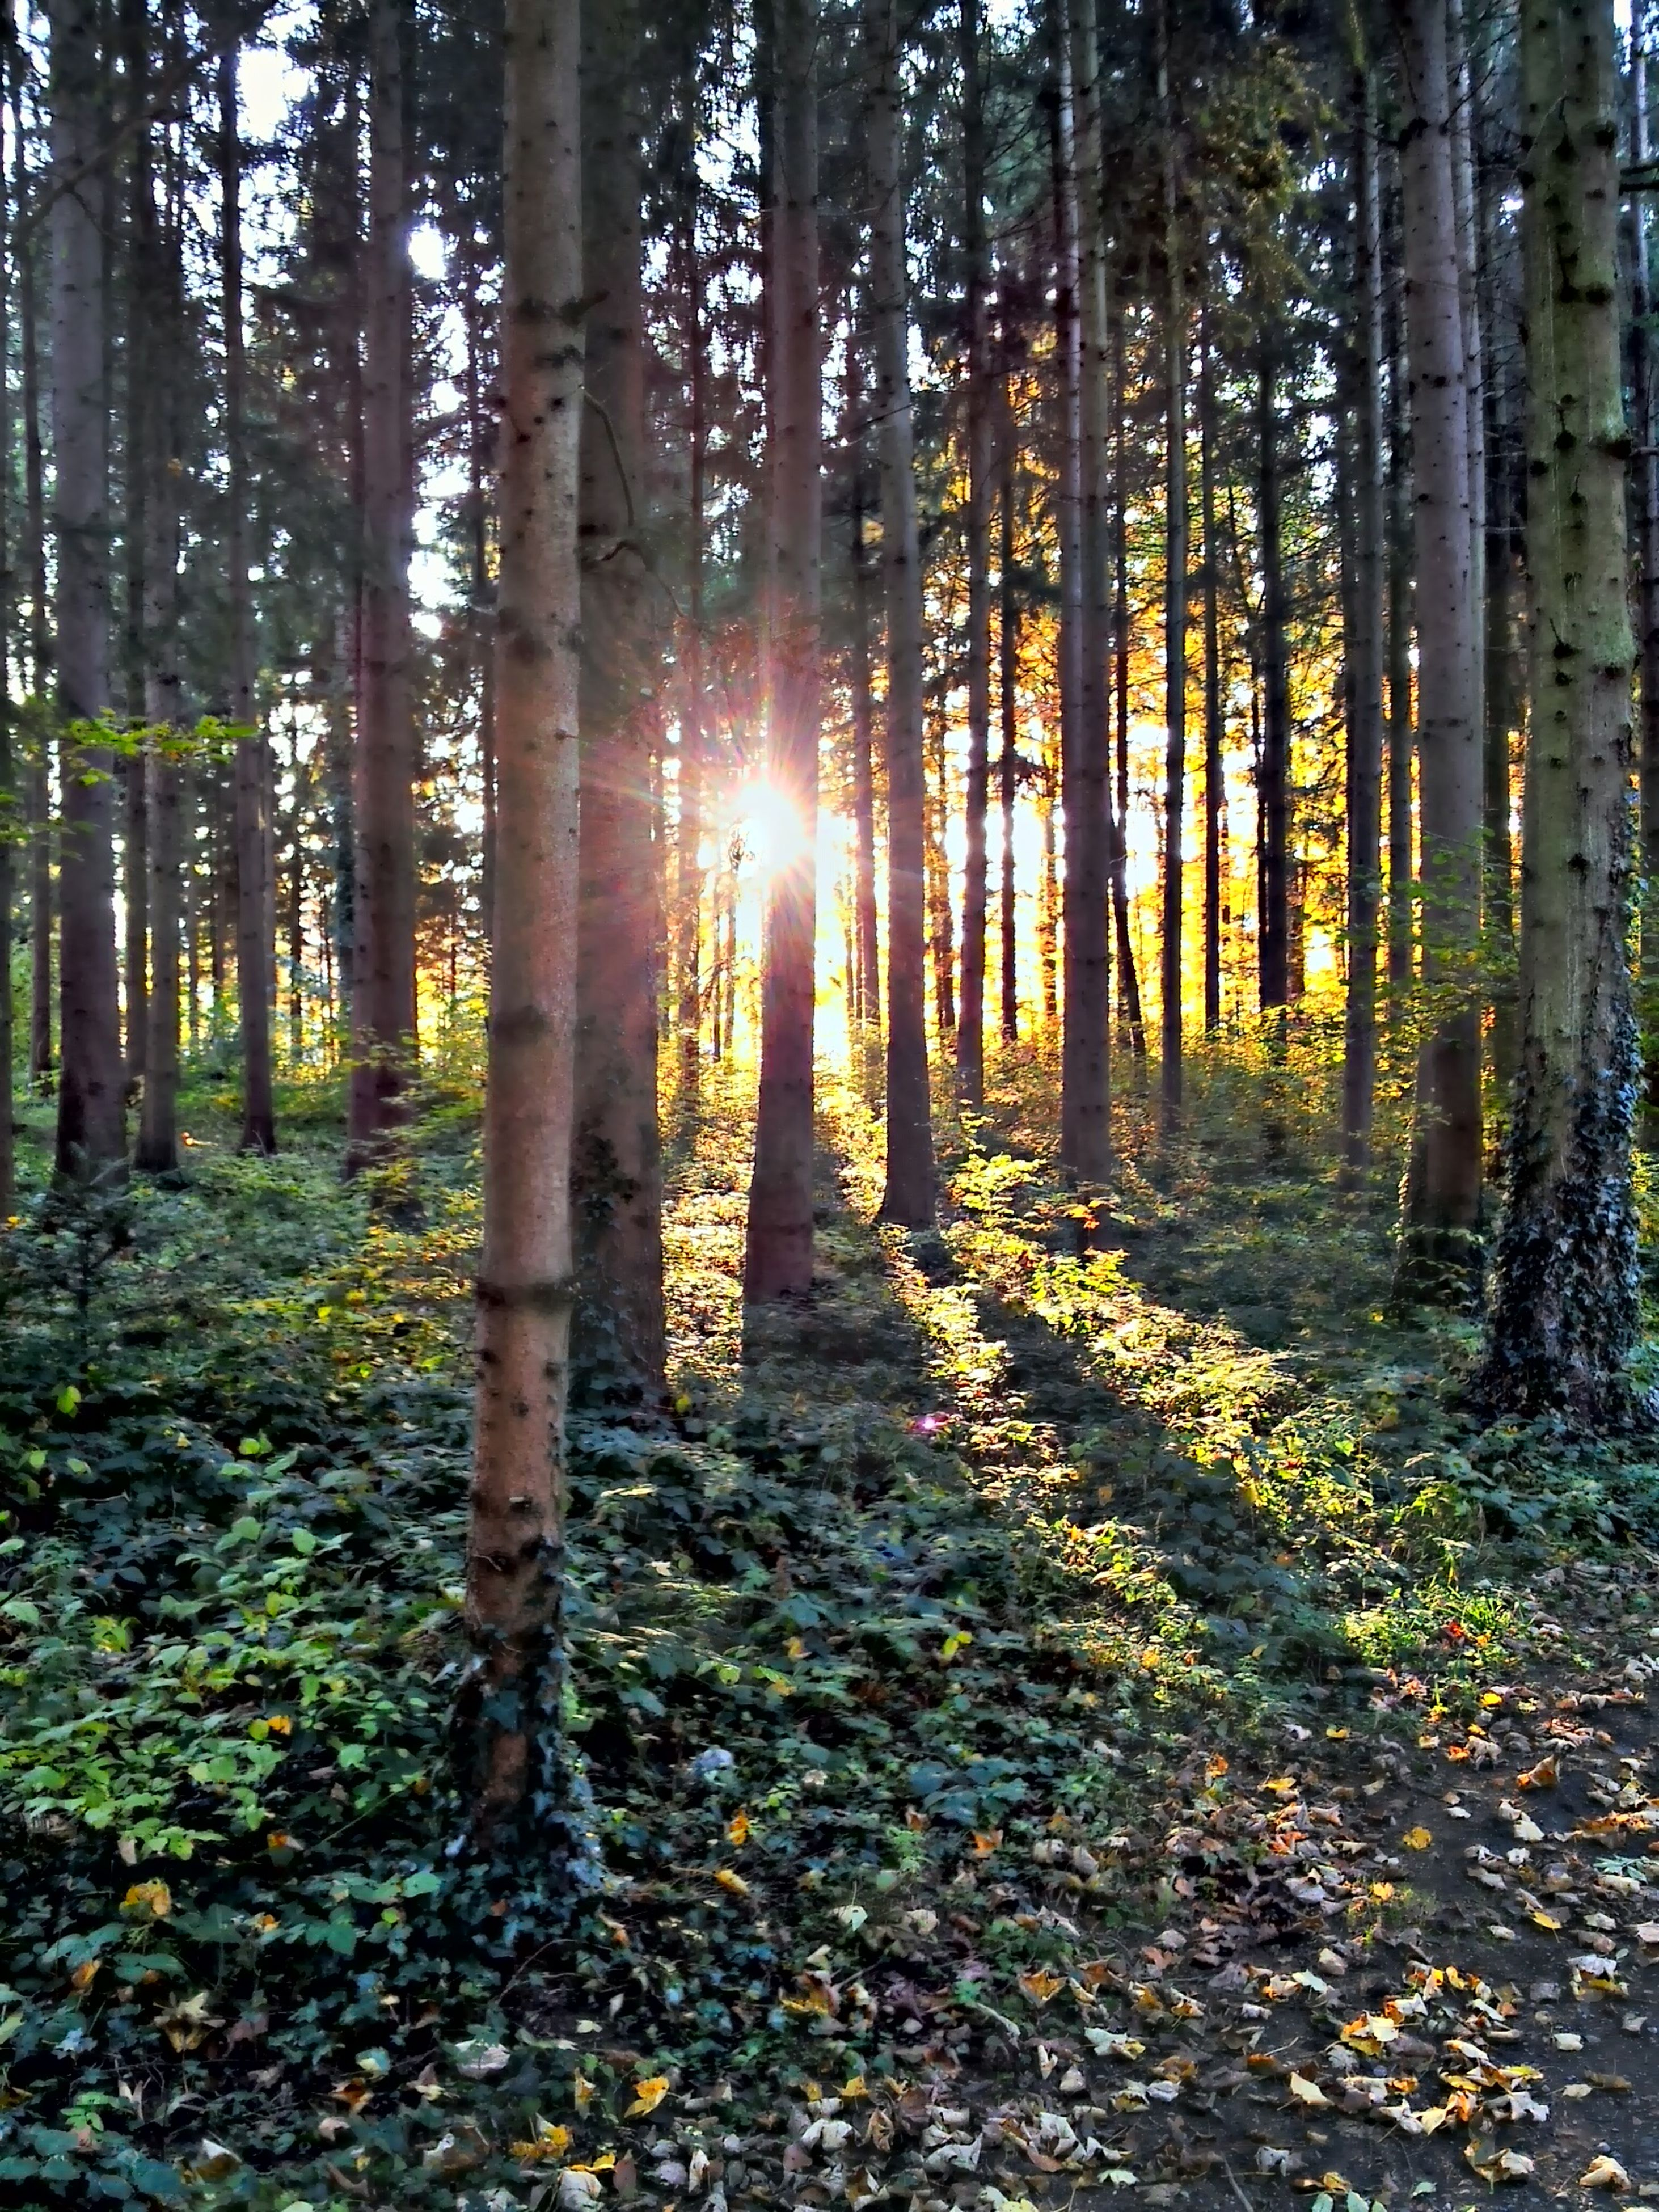 tree, forest, tranquility, woodland, tree trunk, sun, tranquil scene, sunlight, sunbeam, nature, beauty in nature, scenics, growth, lens flare, landscape, non-urban scene, back lit, abundance, no people, outdoors